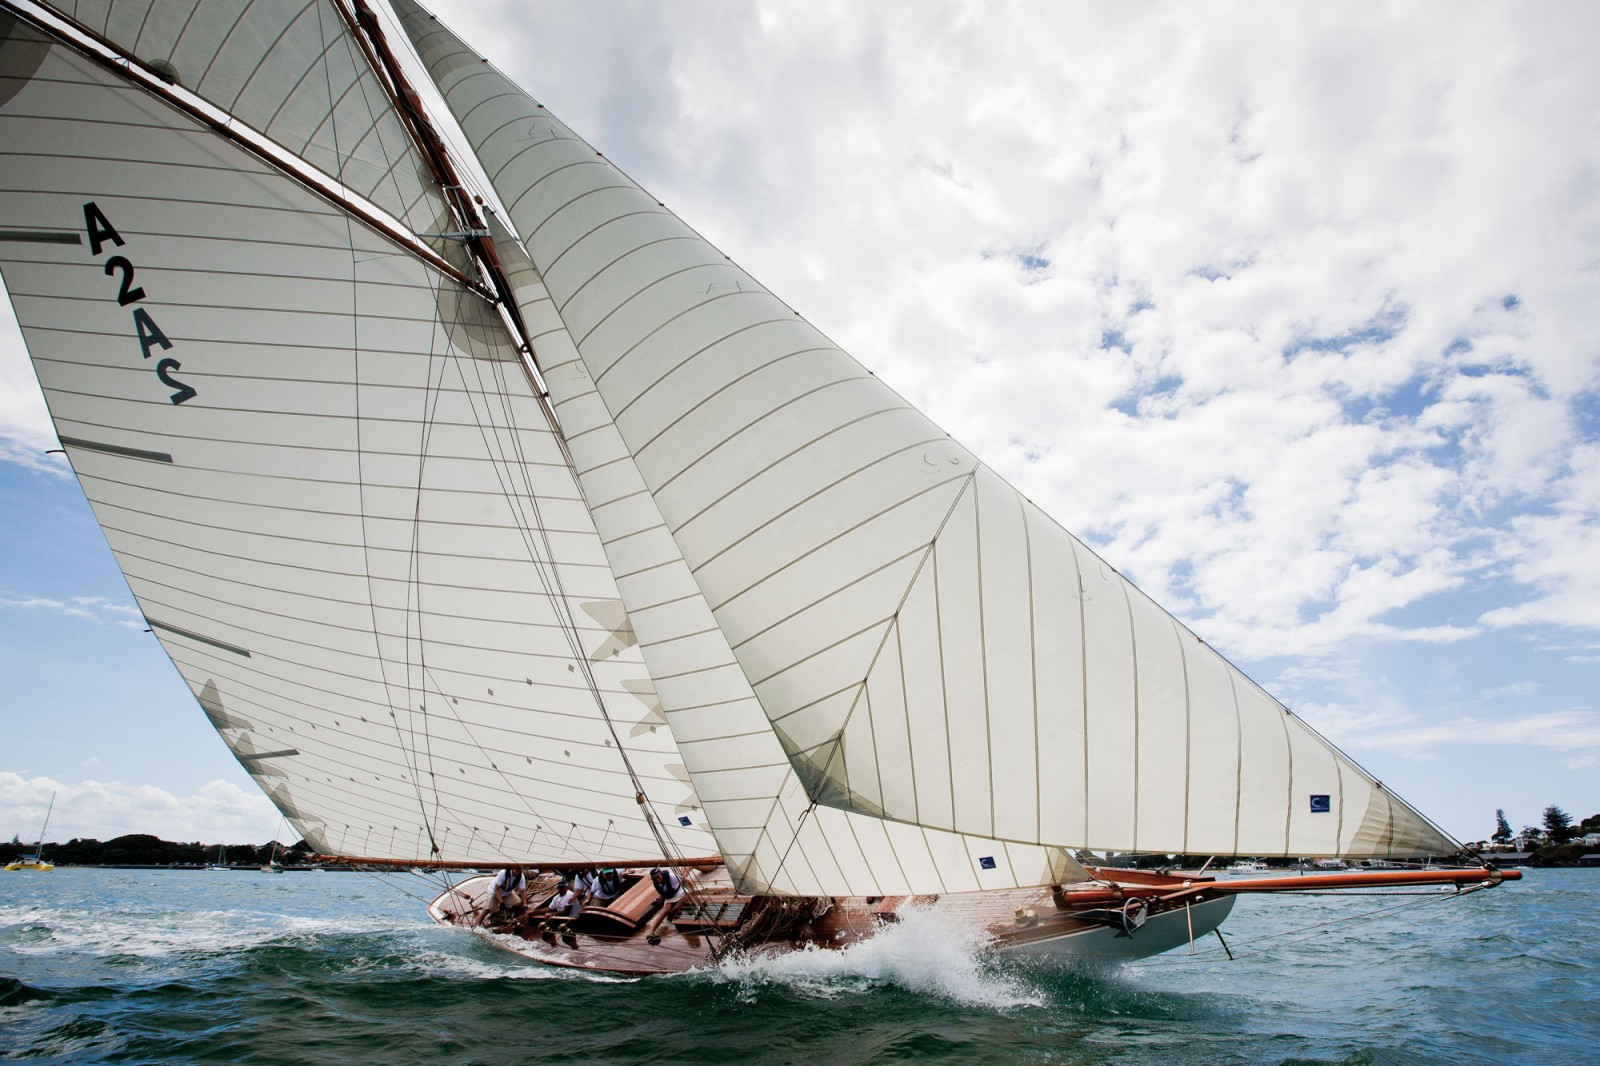 One of the most magnificent of the New Zealand restorations of classic yachts has been of the racing cutter Rawhiti, built in Auckland by Logan Bros for A.T. Pittar of Sydney in October 1905. She sailed the Tasman under jury rig shortly after and became the crack yacht of Sydney Harbour, a place she maintained until the 1930s. In 1946, Auckland yachtsman Hec Marler bought Rawhiti and sailed her back to Auckland. For many years afterwards, converted to a Bermudan cutter, she was one of the best of Auckland's first class yachts, but suffered over the years from alterations and 'modernising'. Ten years ago, she was rescued by a consortium headed by lawyer Greg Lee, which commissioned Peter Brookes of Kumeu to carry out a faithful restoration to her original gaff cutter configuration as befitted her thoroughbred Logan provenance and her brilliant racing history. There have been several landmark restorations of Logan yachts in recent years, but the September 2011 re-launch of Rawhiti used up all the superlatives and attracted much overseas attention. The cost was staggering—well into seven figures, it is believed. While the 2012 regatta was Rawhiti's first for many years, the quality of her kauri timbers and craftsmanship will ensure her at least another century of regattas.